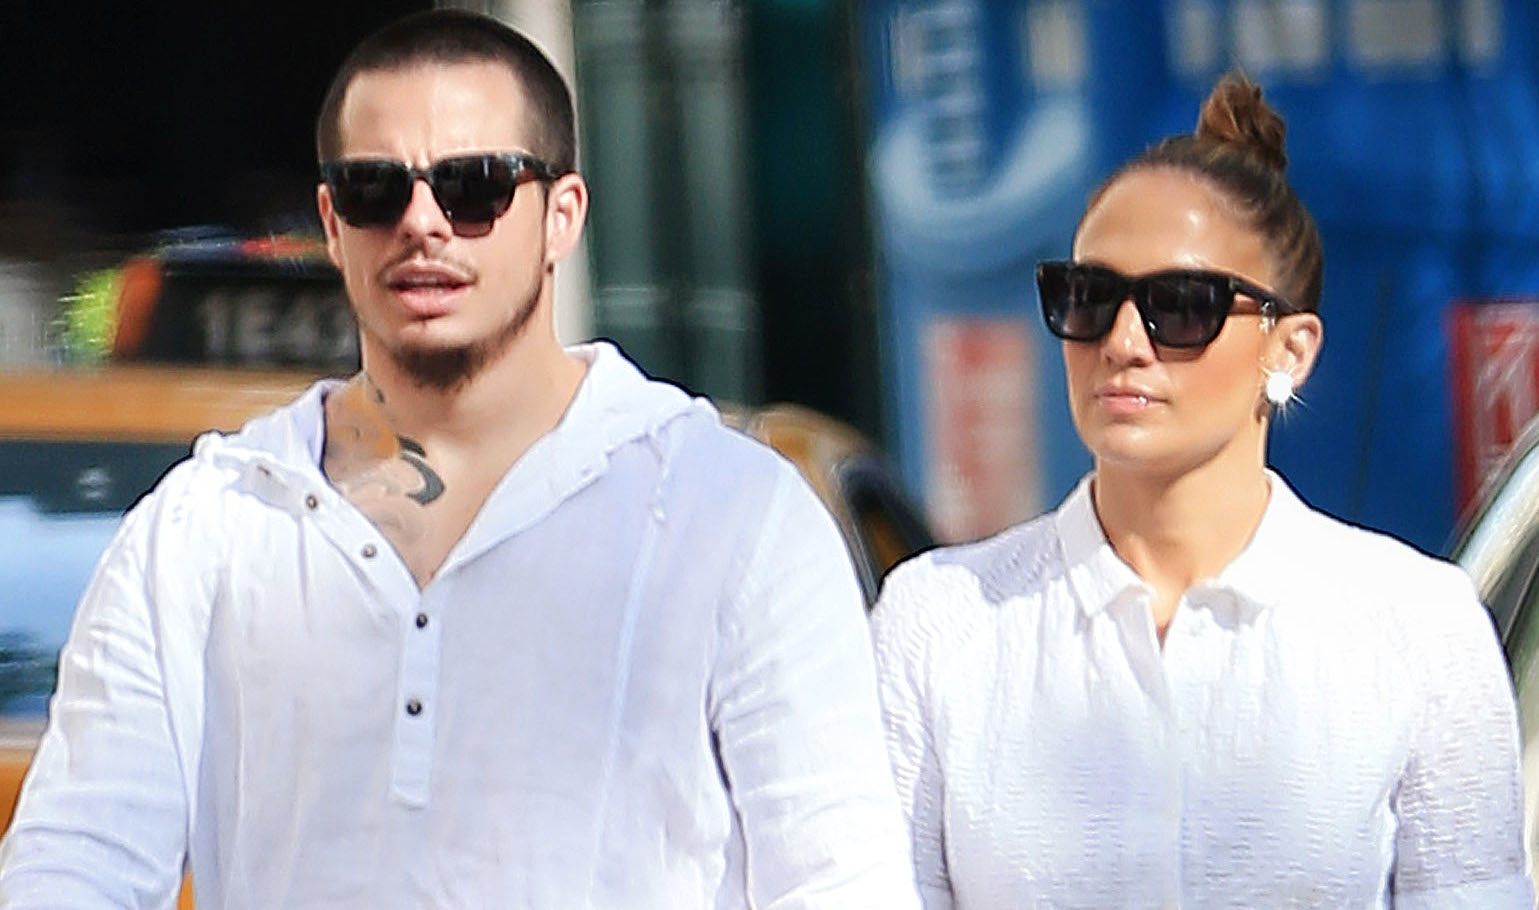 EXCLUSIVE: Jennifer Lopez and Casper Smart take a romantic walk in NYC